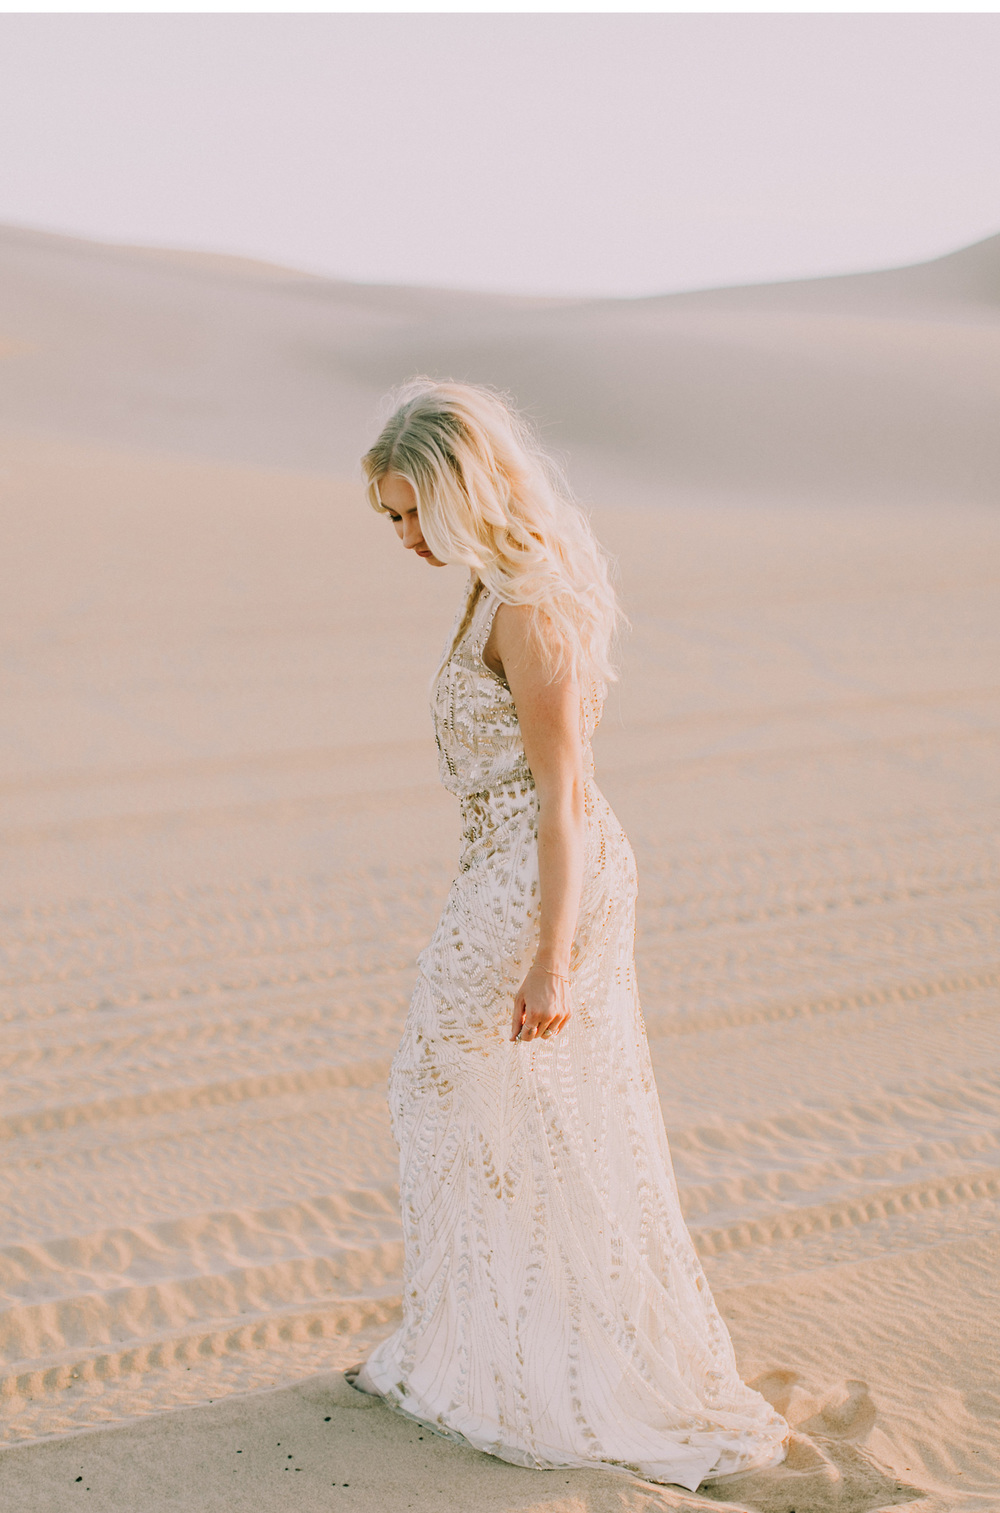 Desert-Wedding-Free-People-Wedding-Natalie-Schutt-Photography_01.jpg